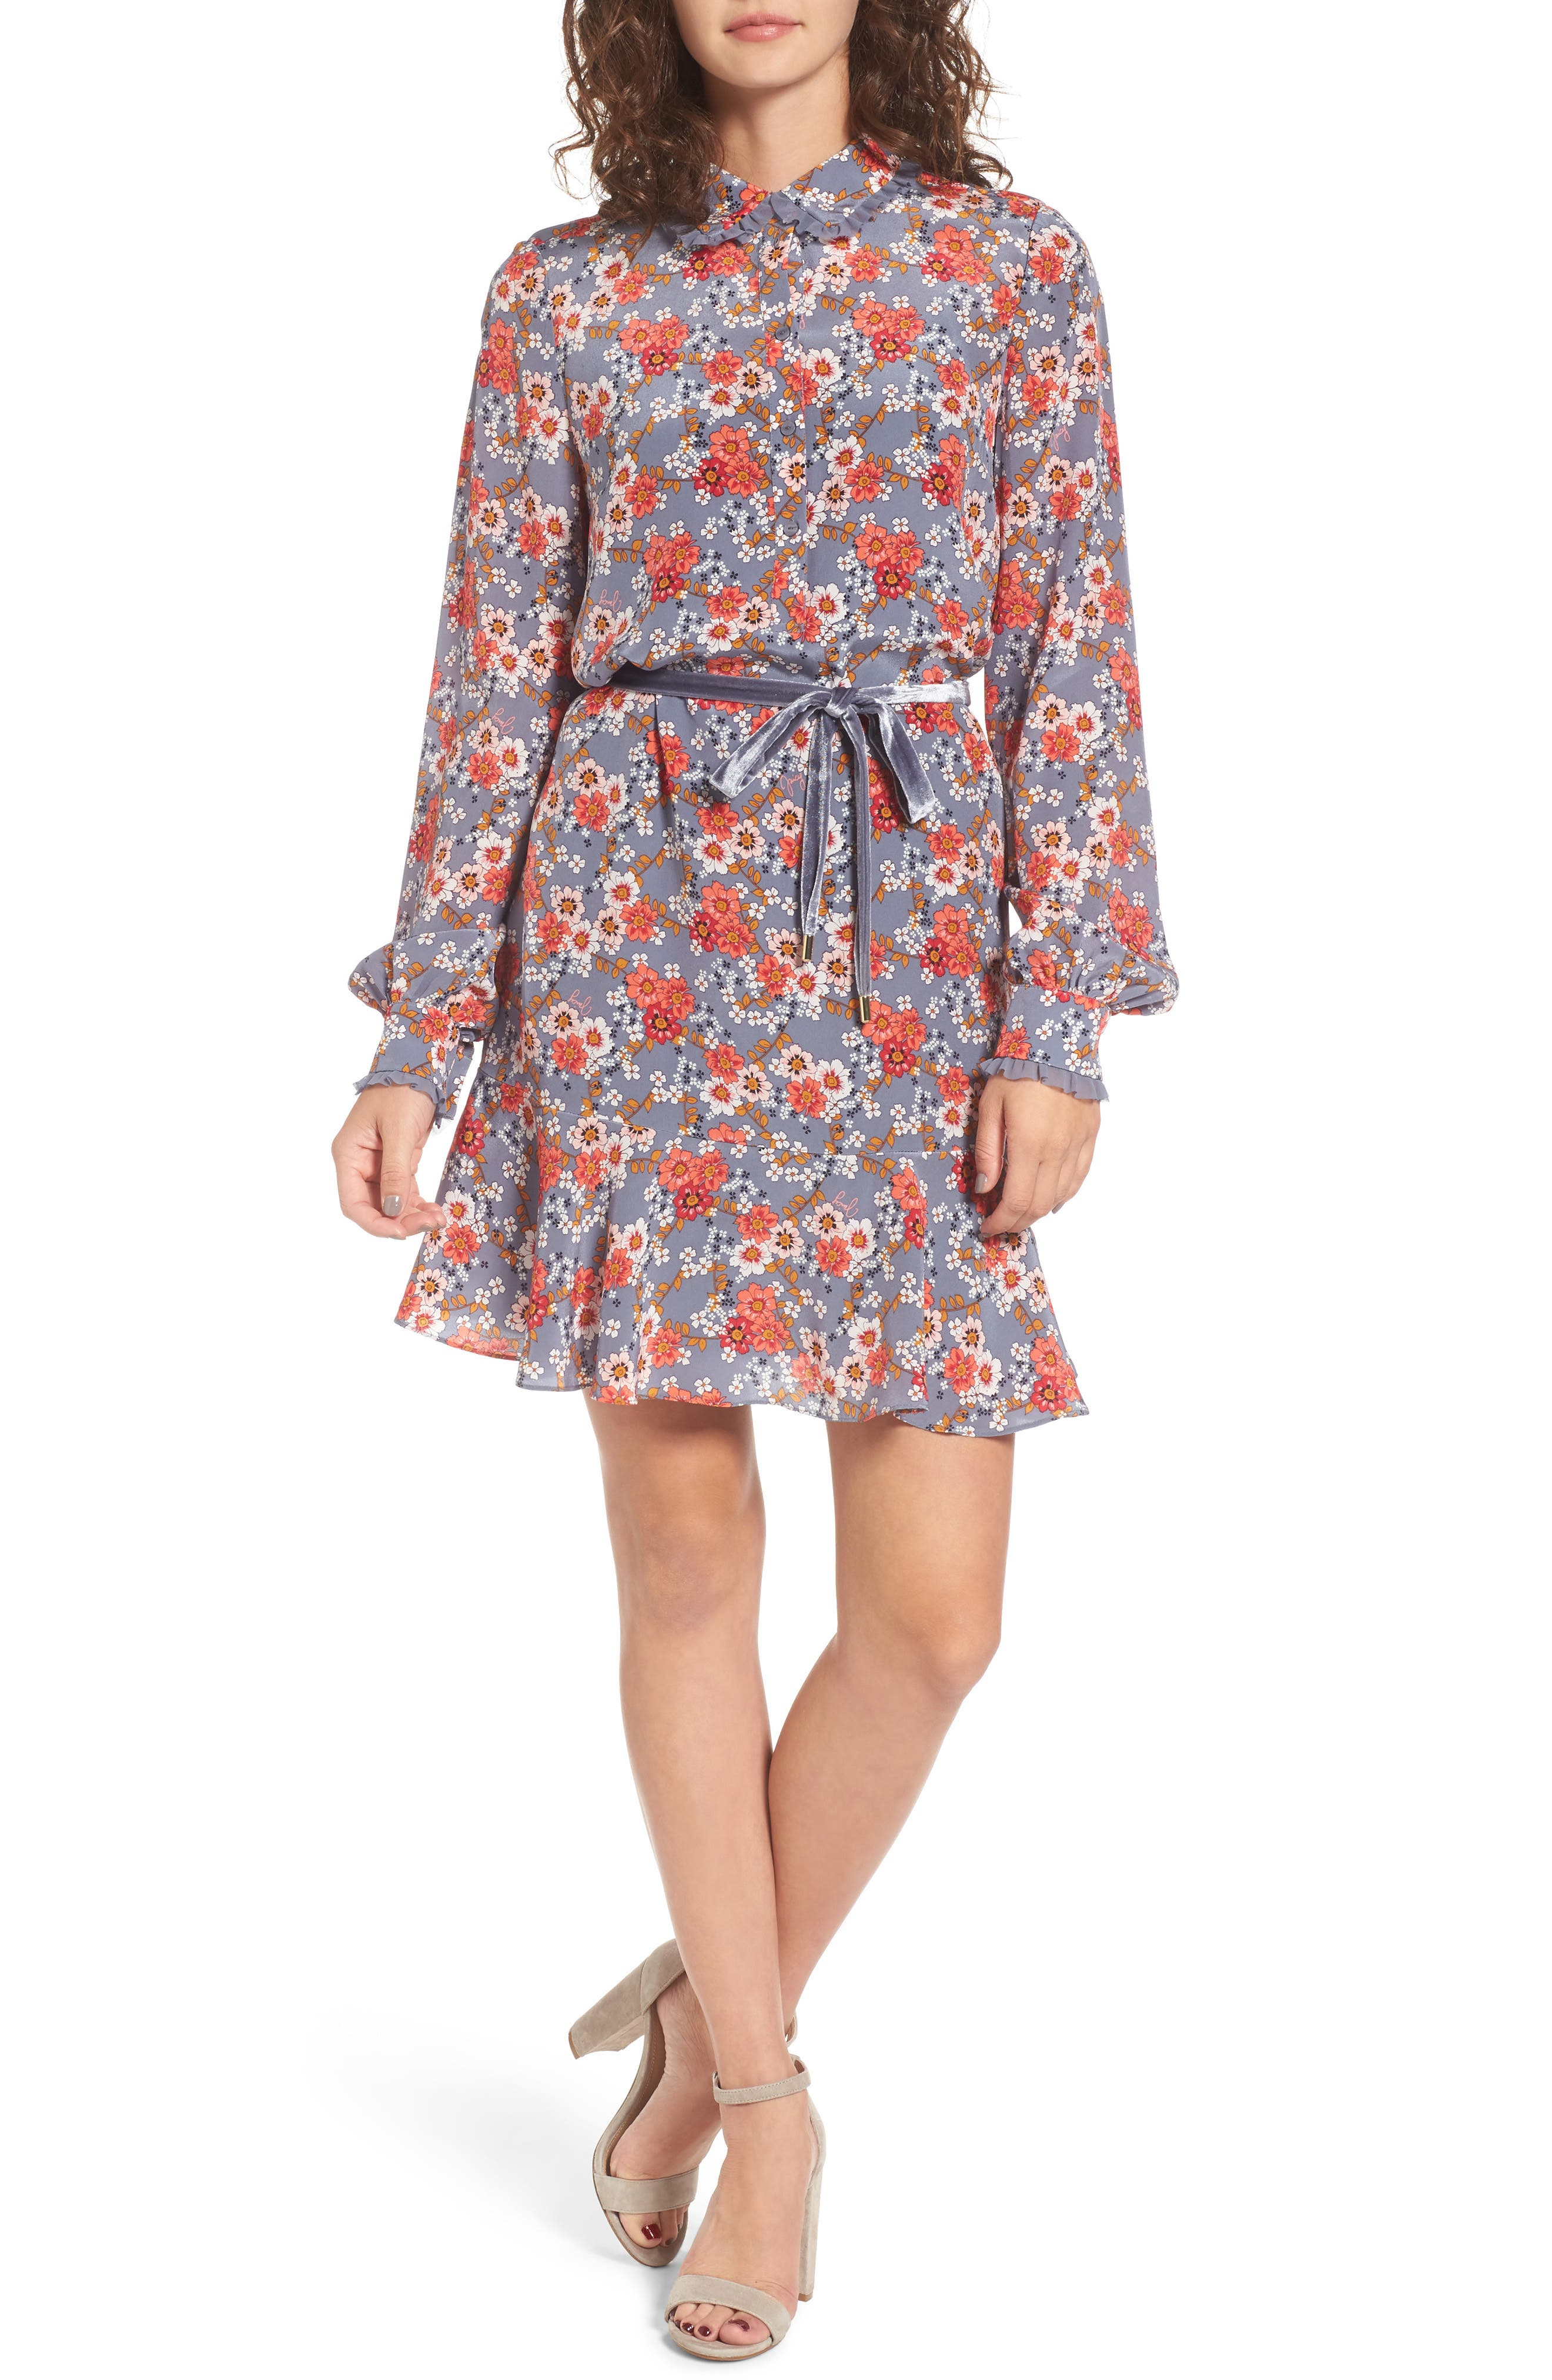 Alternate Image 1 Selected - Juicy Couture Larchmont Blooms Silk Shirtdress